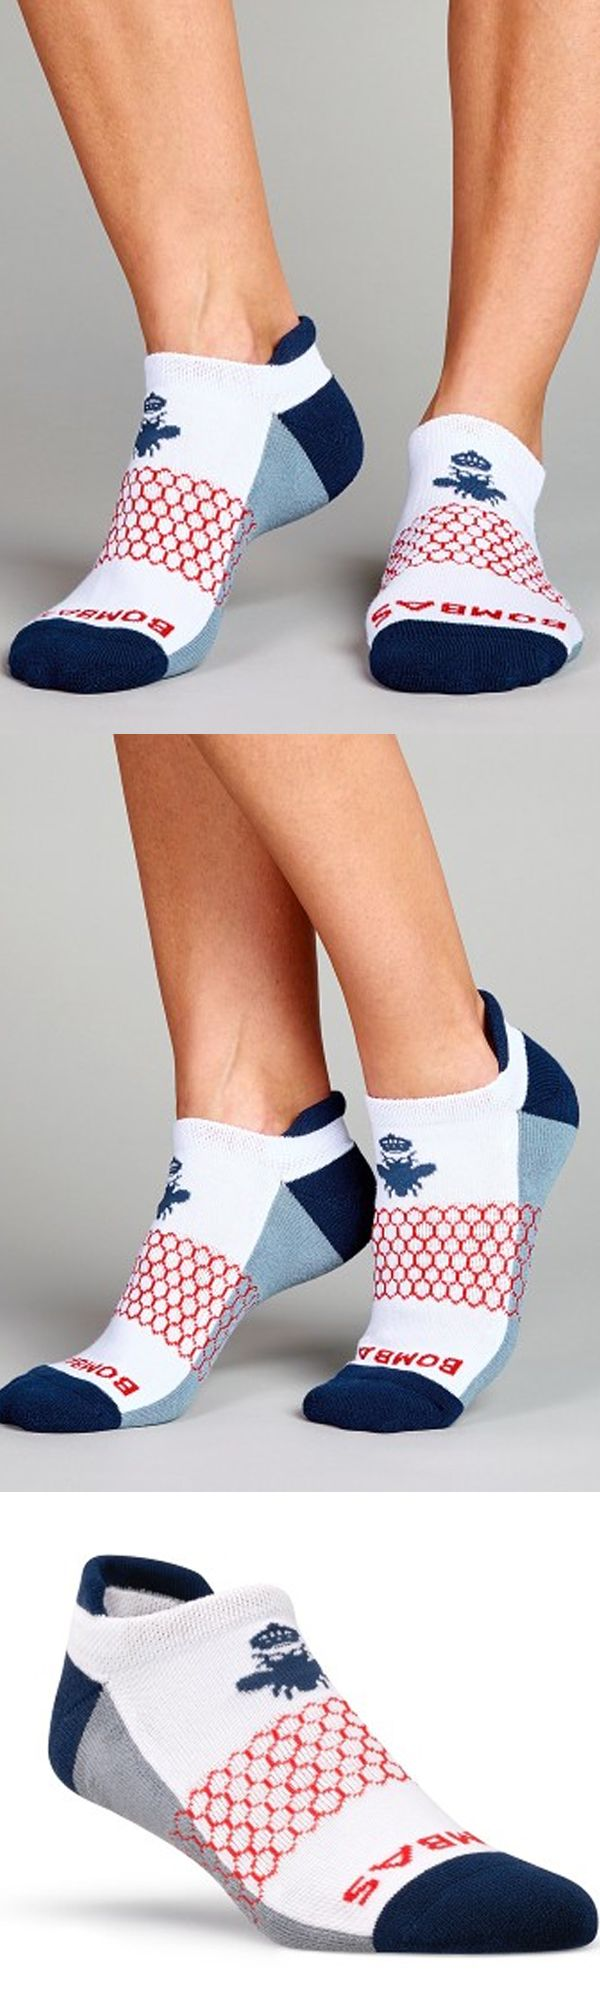 Whether you're the queen bee, a worker bee, or a busy bee, you need great socks to get you through the day. Quality materials and tested features make for the perfect socks to outfit the whole hive.   http://www.bombas.com/women?filter=5&utm_source=Pinterest&utm_medium=Social&utm_campaign=1.25P